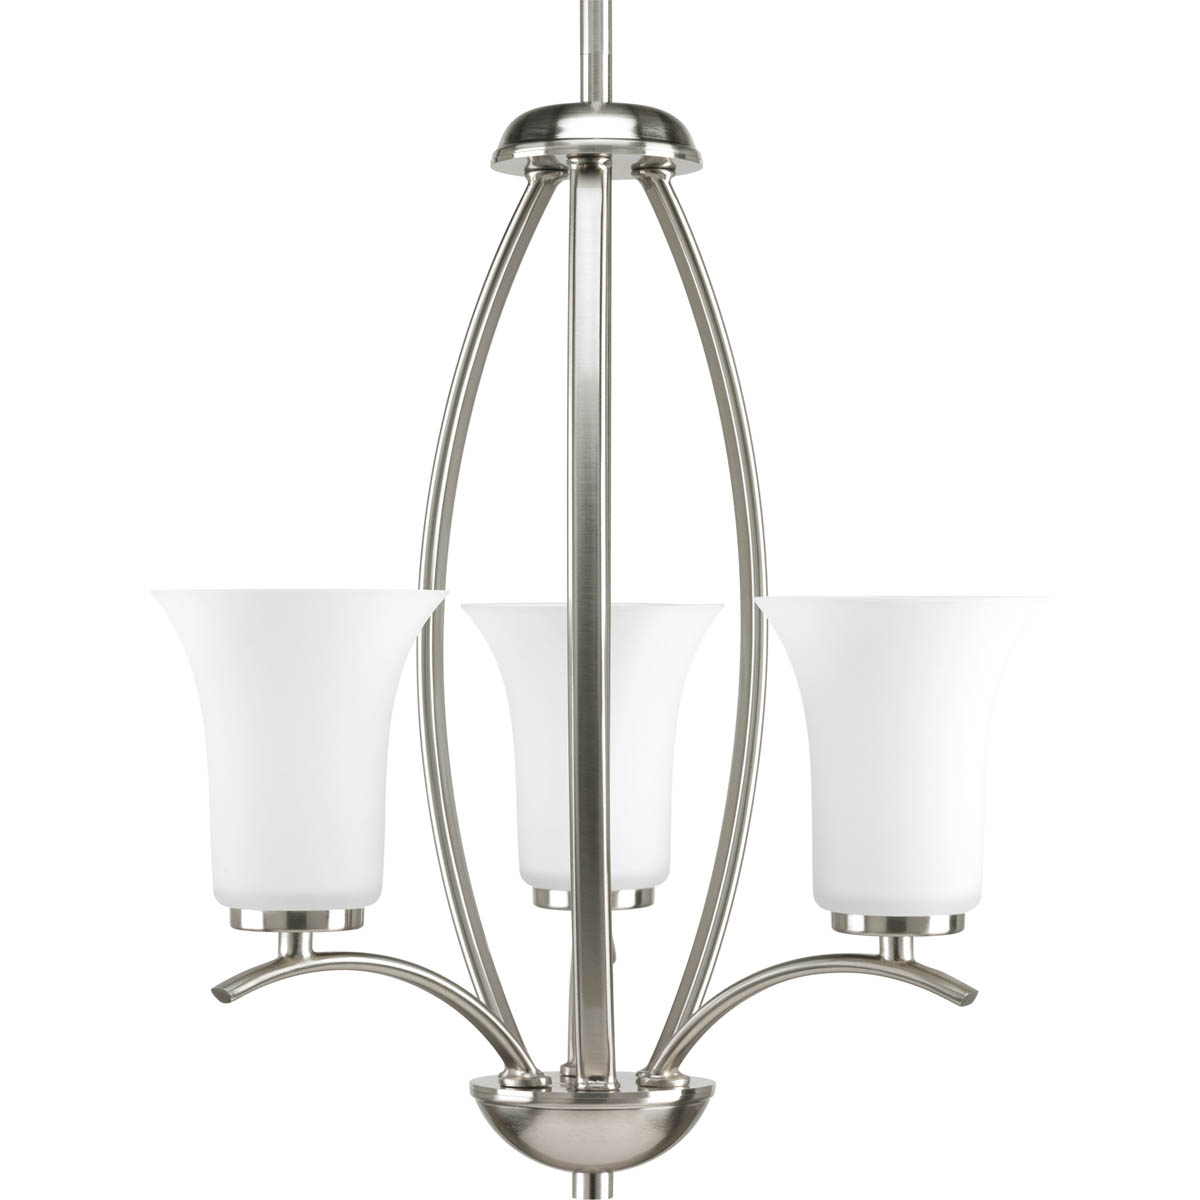 PRO P3587-09 3X60C Brushed Nickel Etched Glass Chandelier